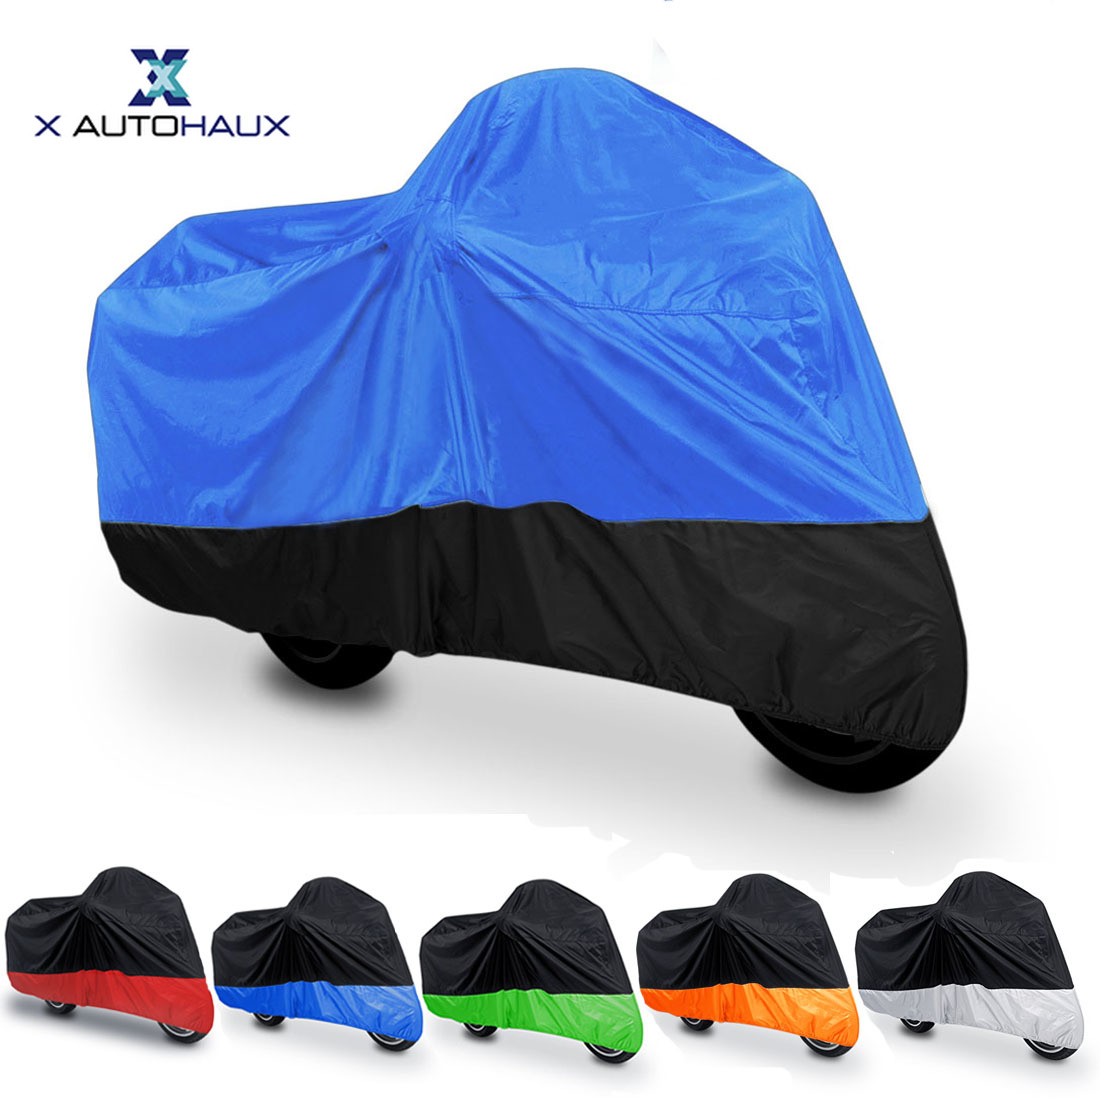 X AUTOHAUX Universal 180T Rain Dust Winter Motorcycle Cover Outdoor Waterproof UV Whole Motor COVER With Tighten Strap Design